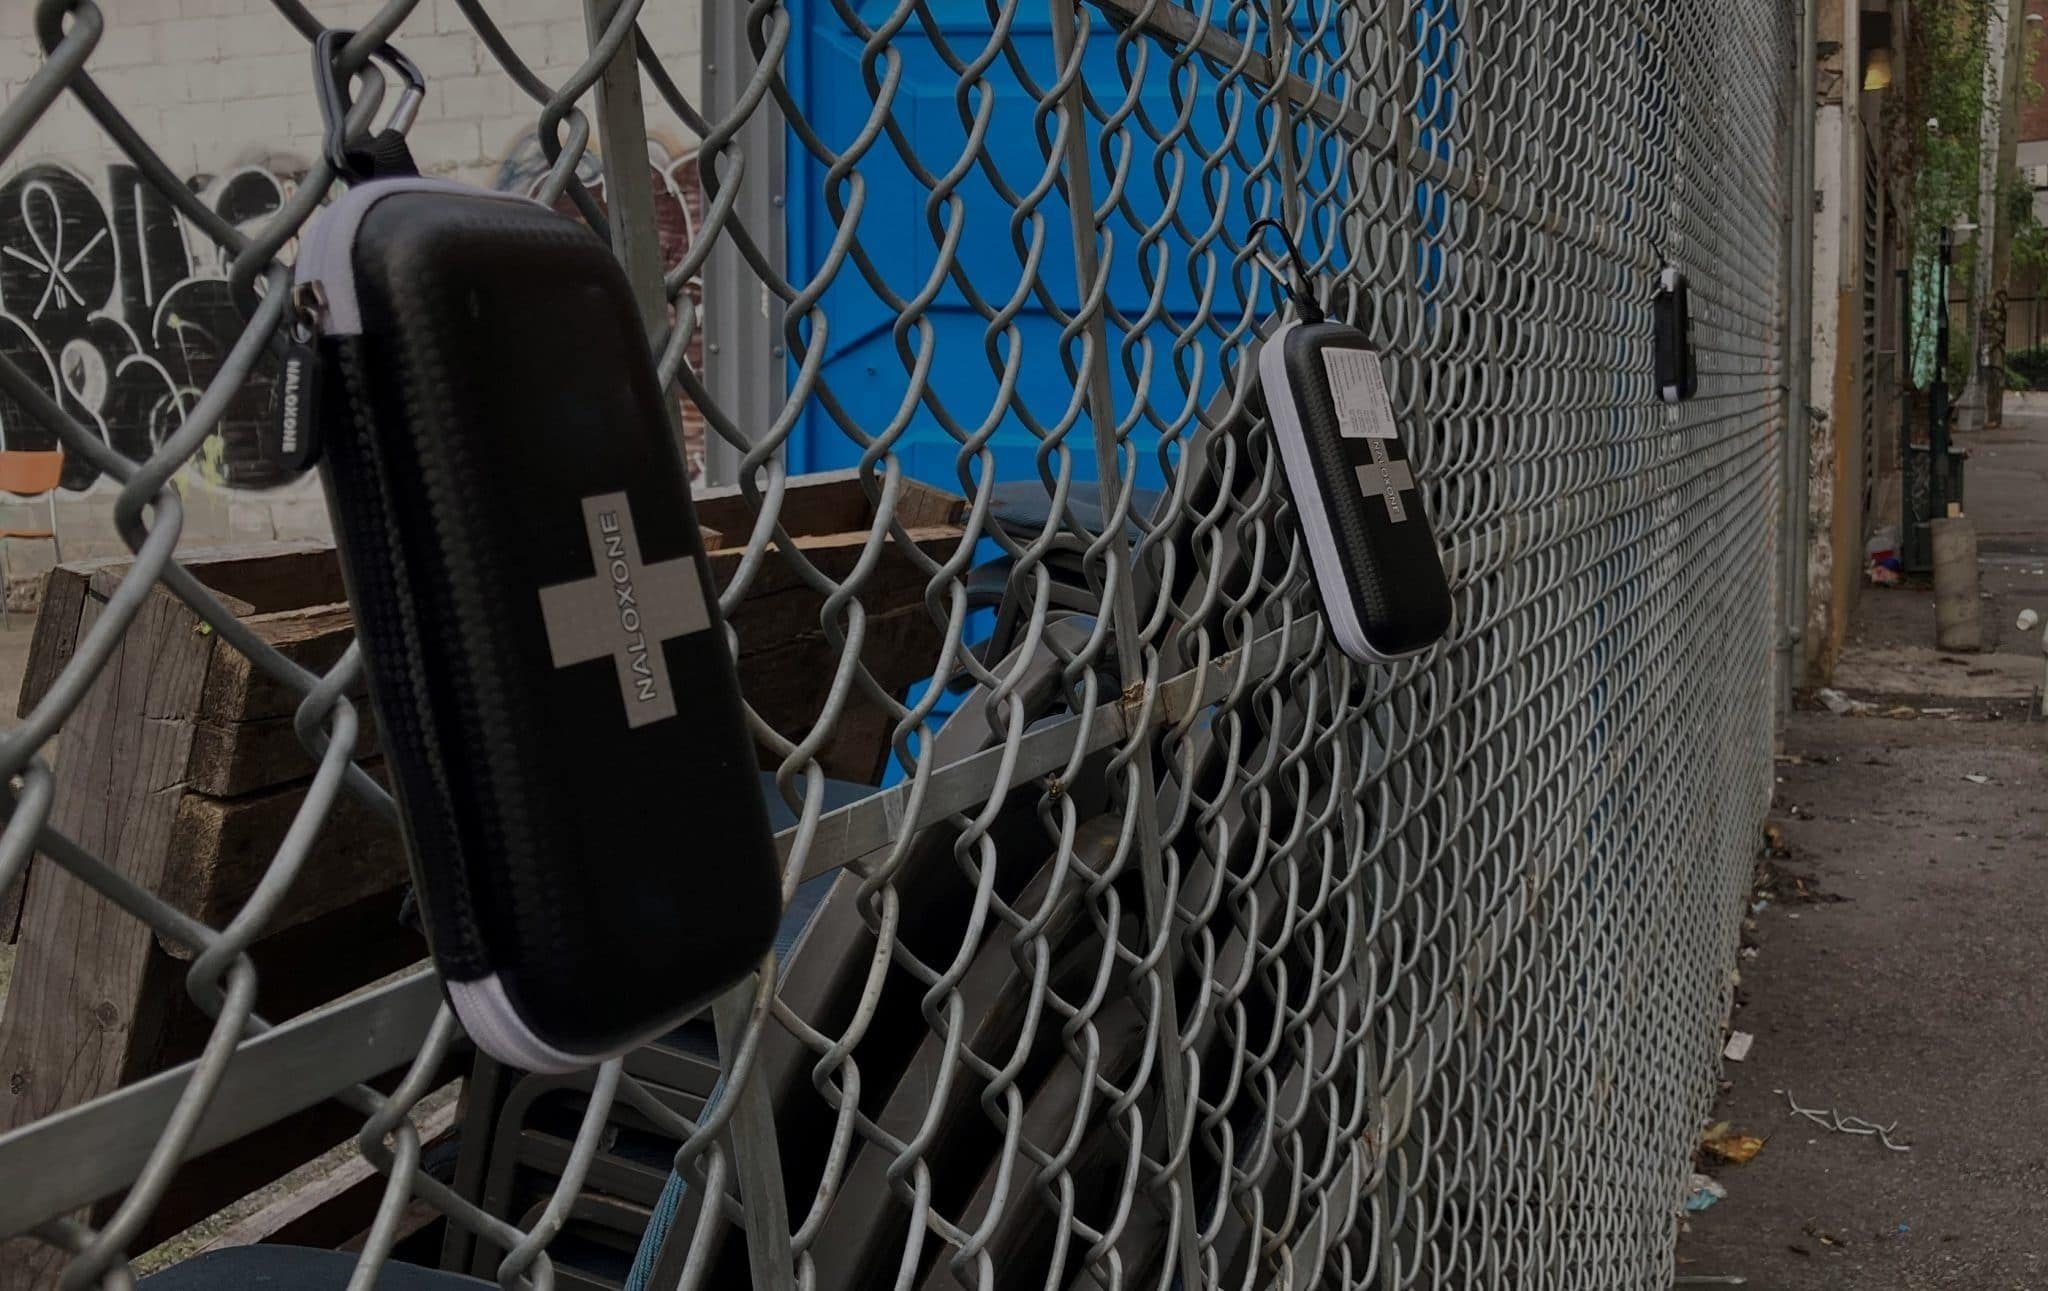 Three naloxone kits strung up to a chain link fence